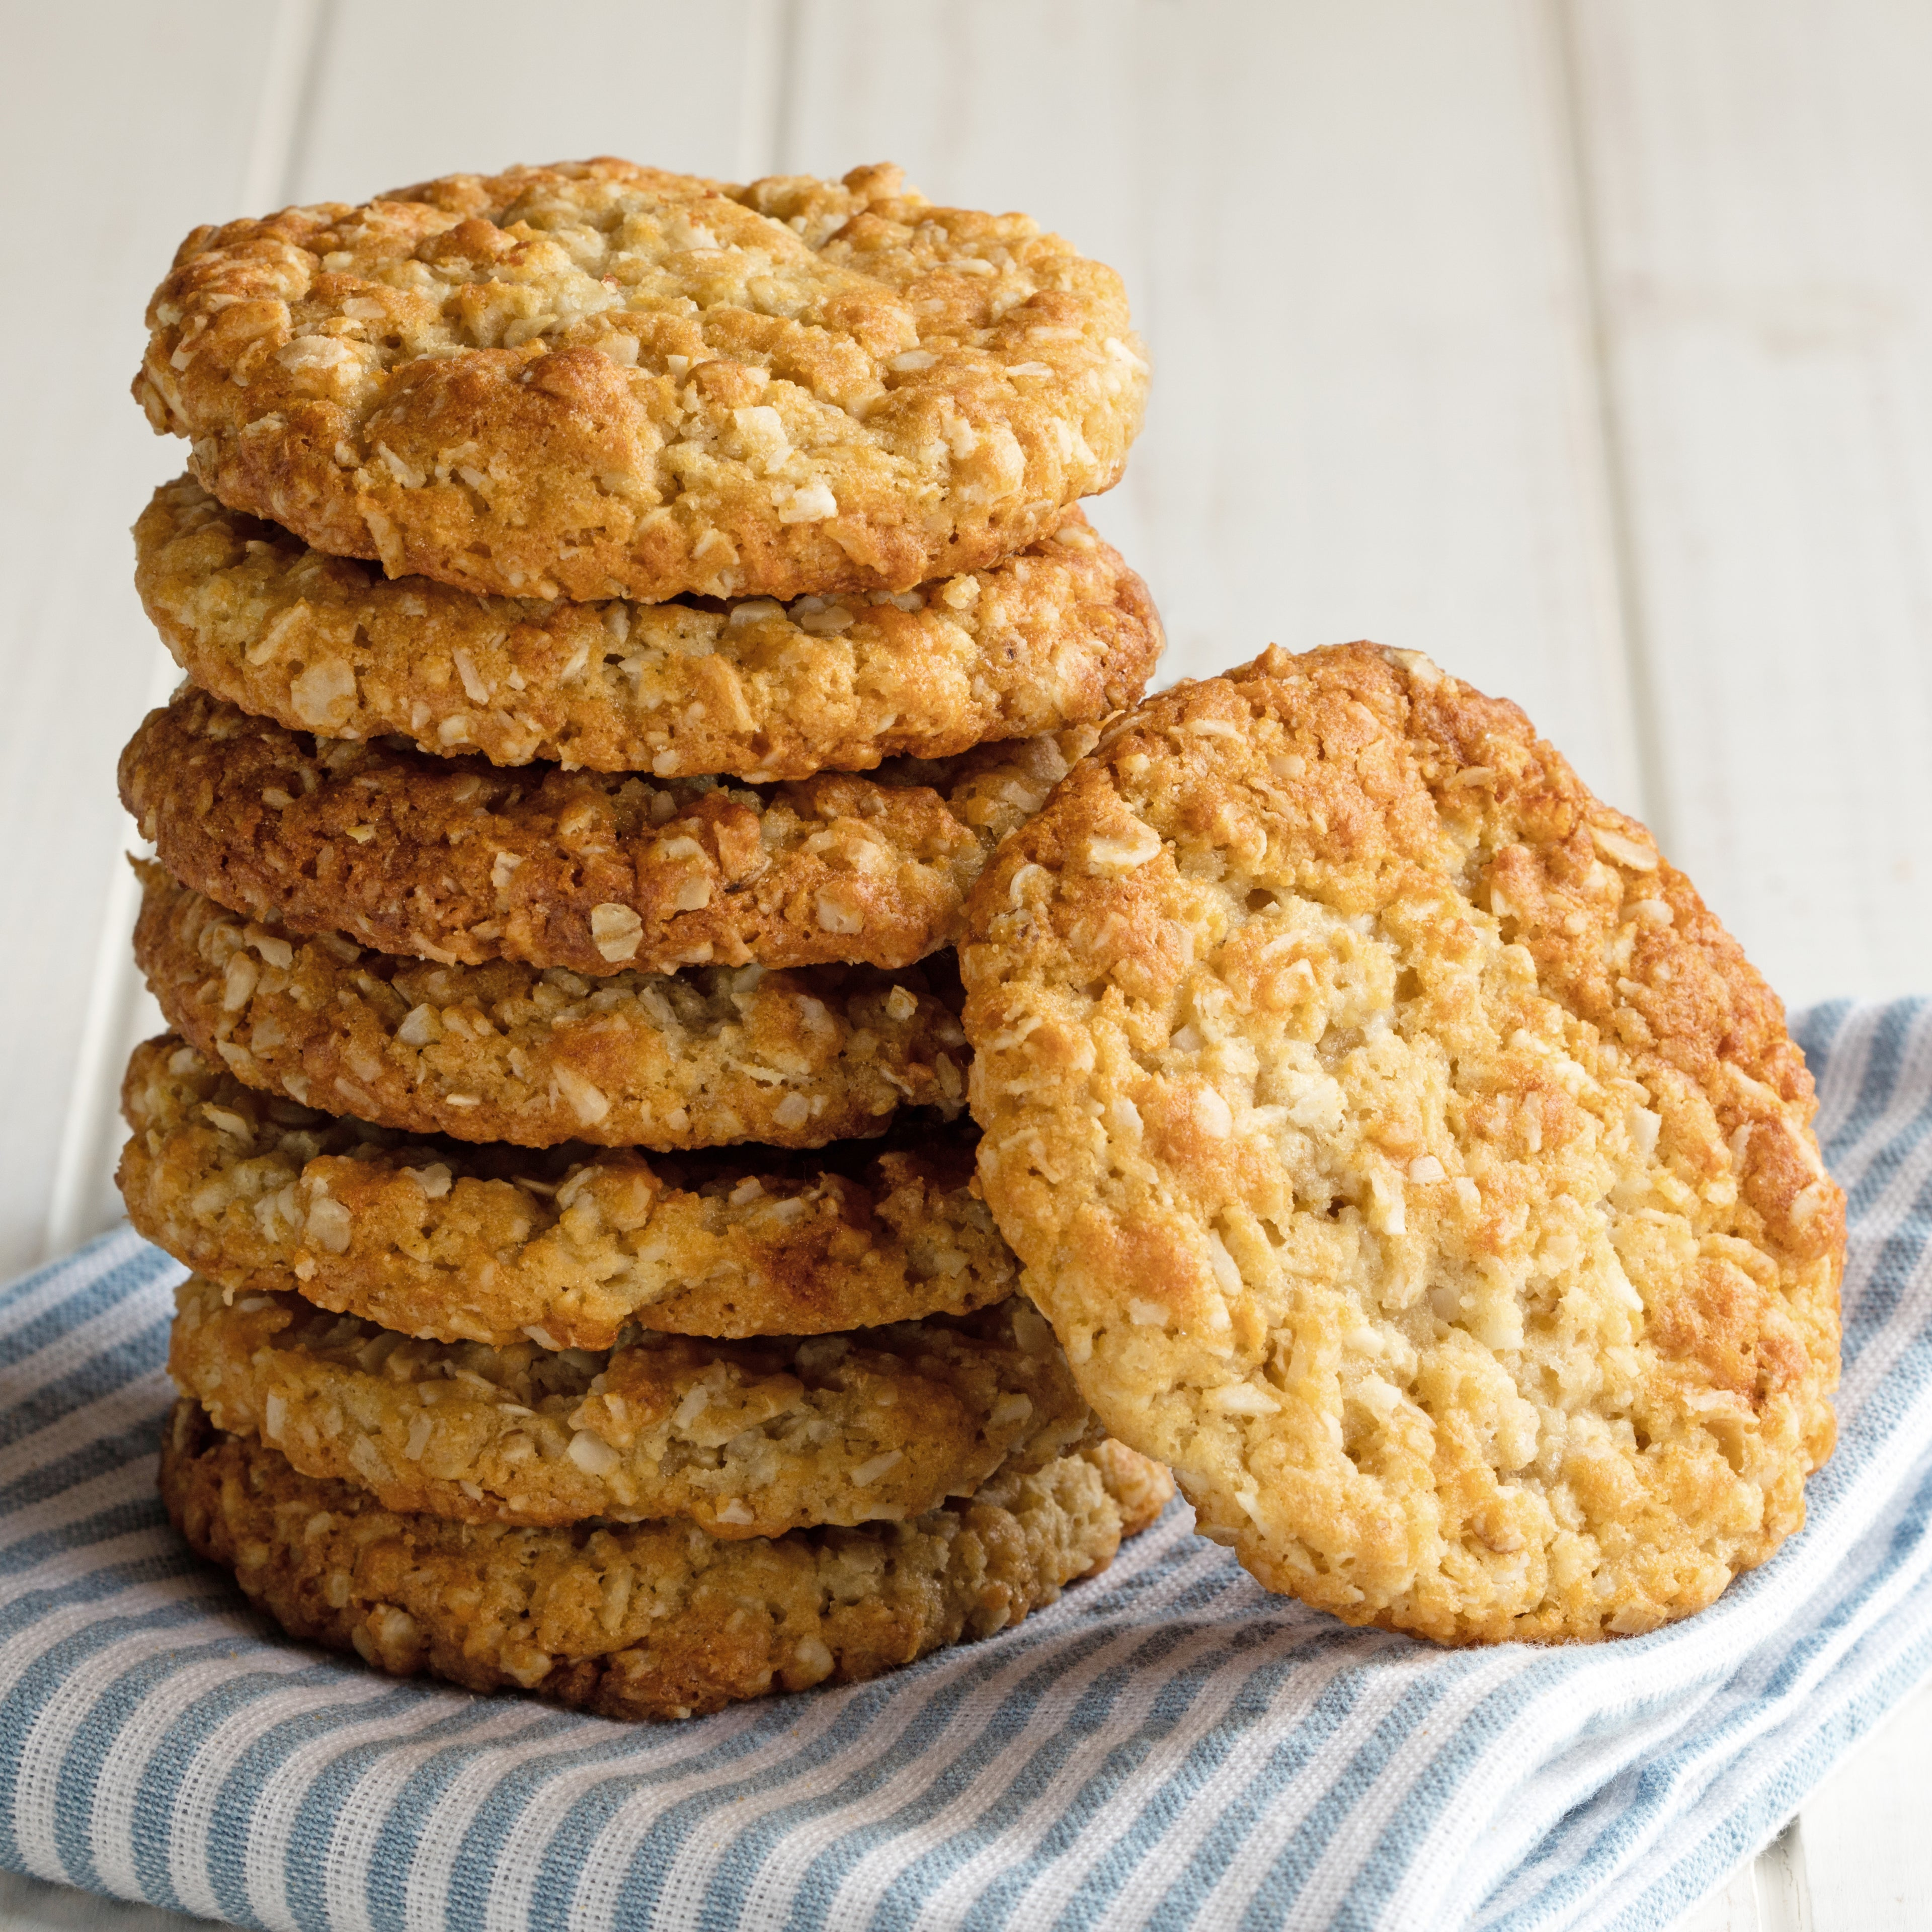 anzac-biscuits-(2)_1.jpg